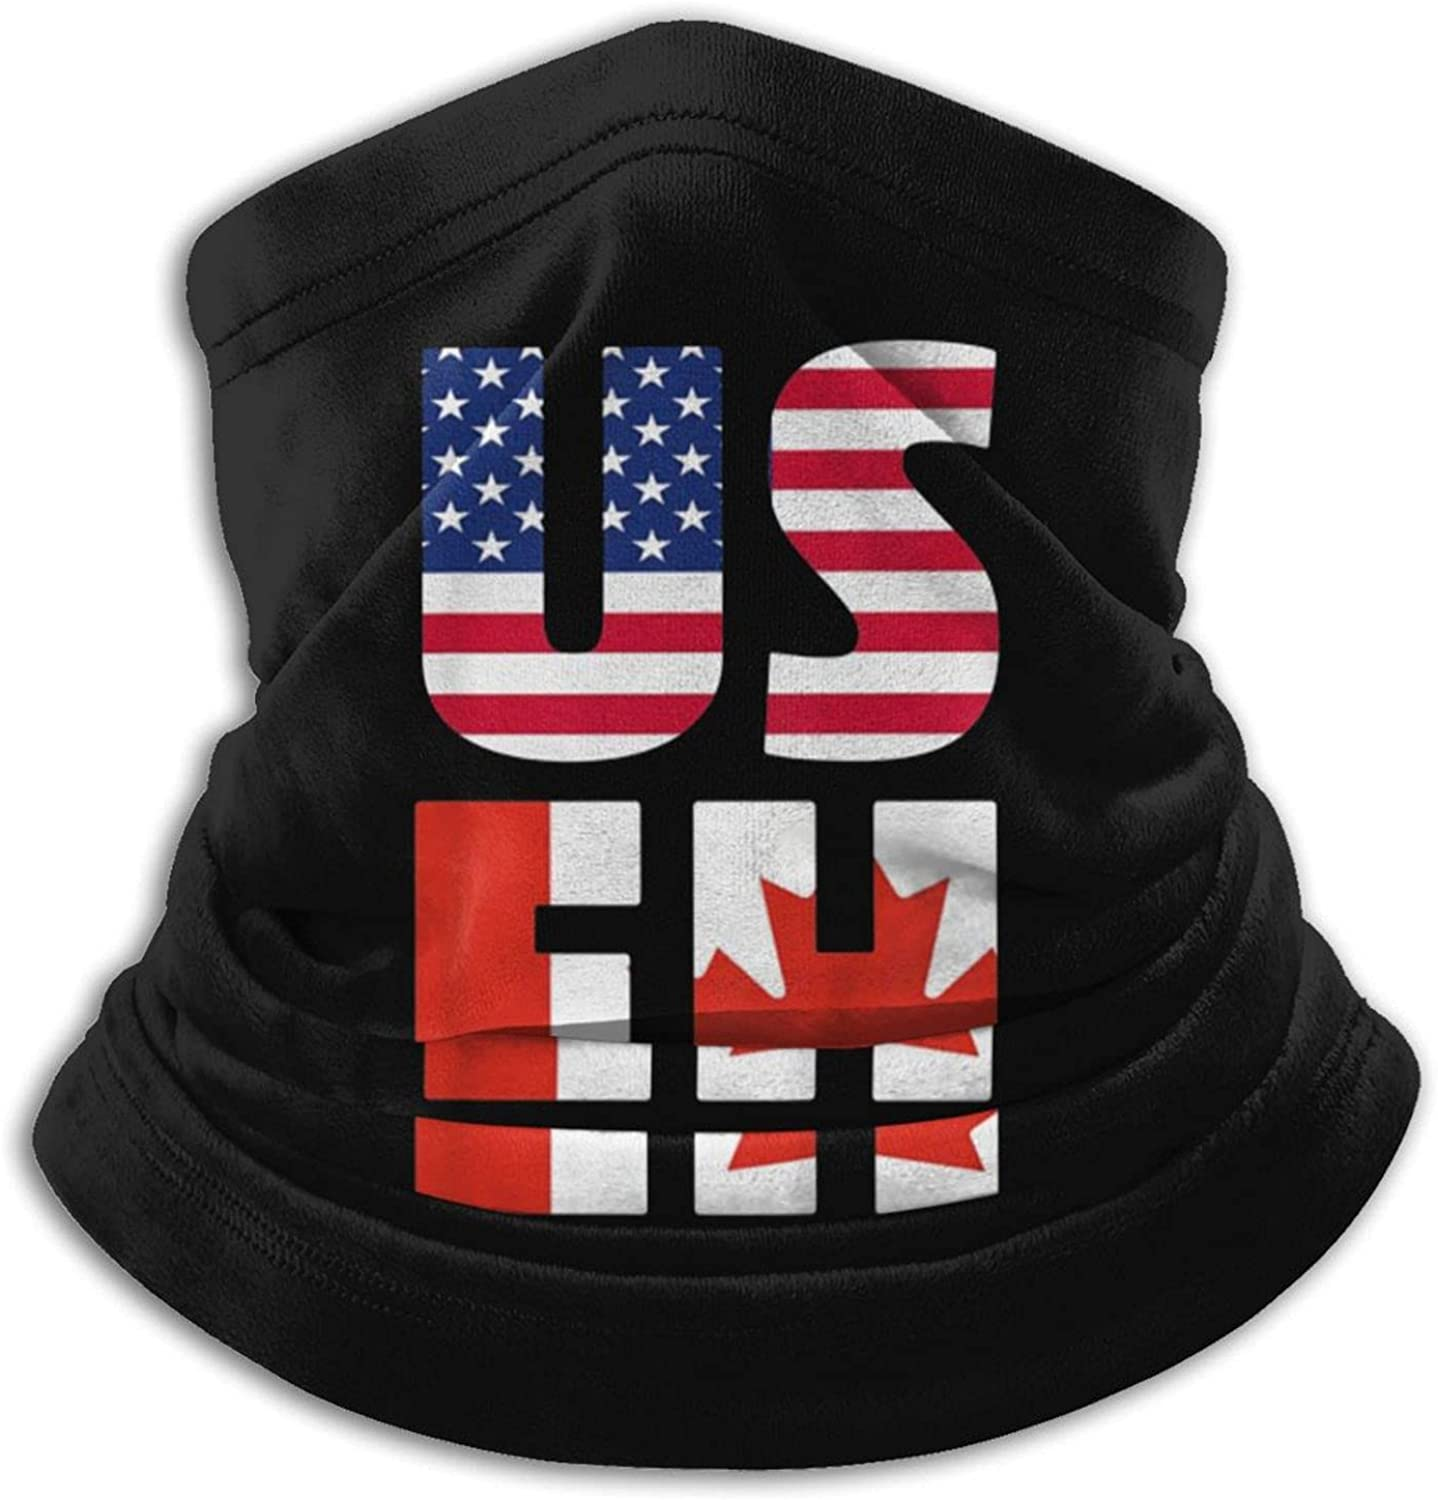 Us eh america and canada flag canadian usa unisex winter neck gaiter face cover mask, windproof balaclava scarf for fishing, running & hiking